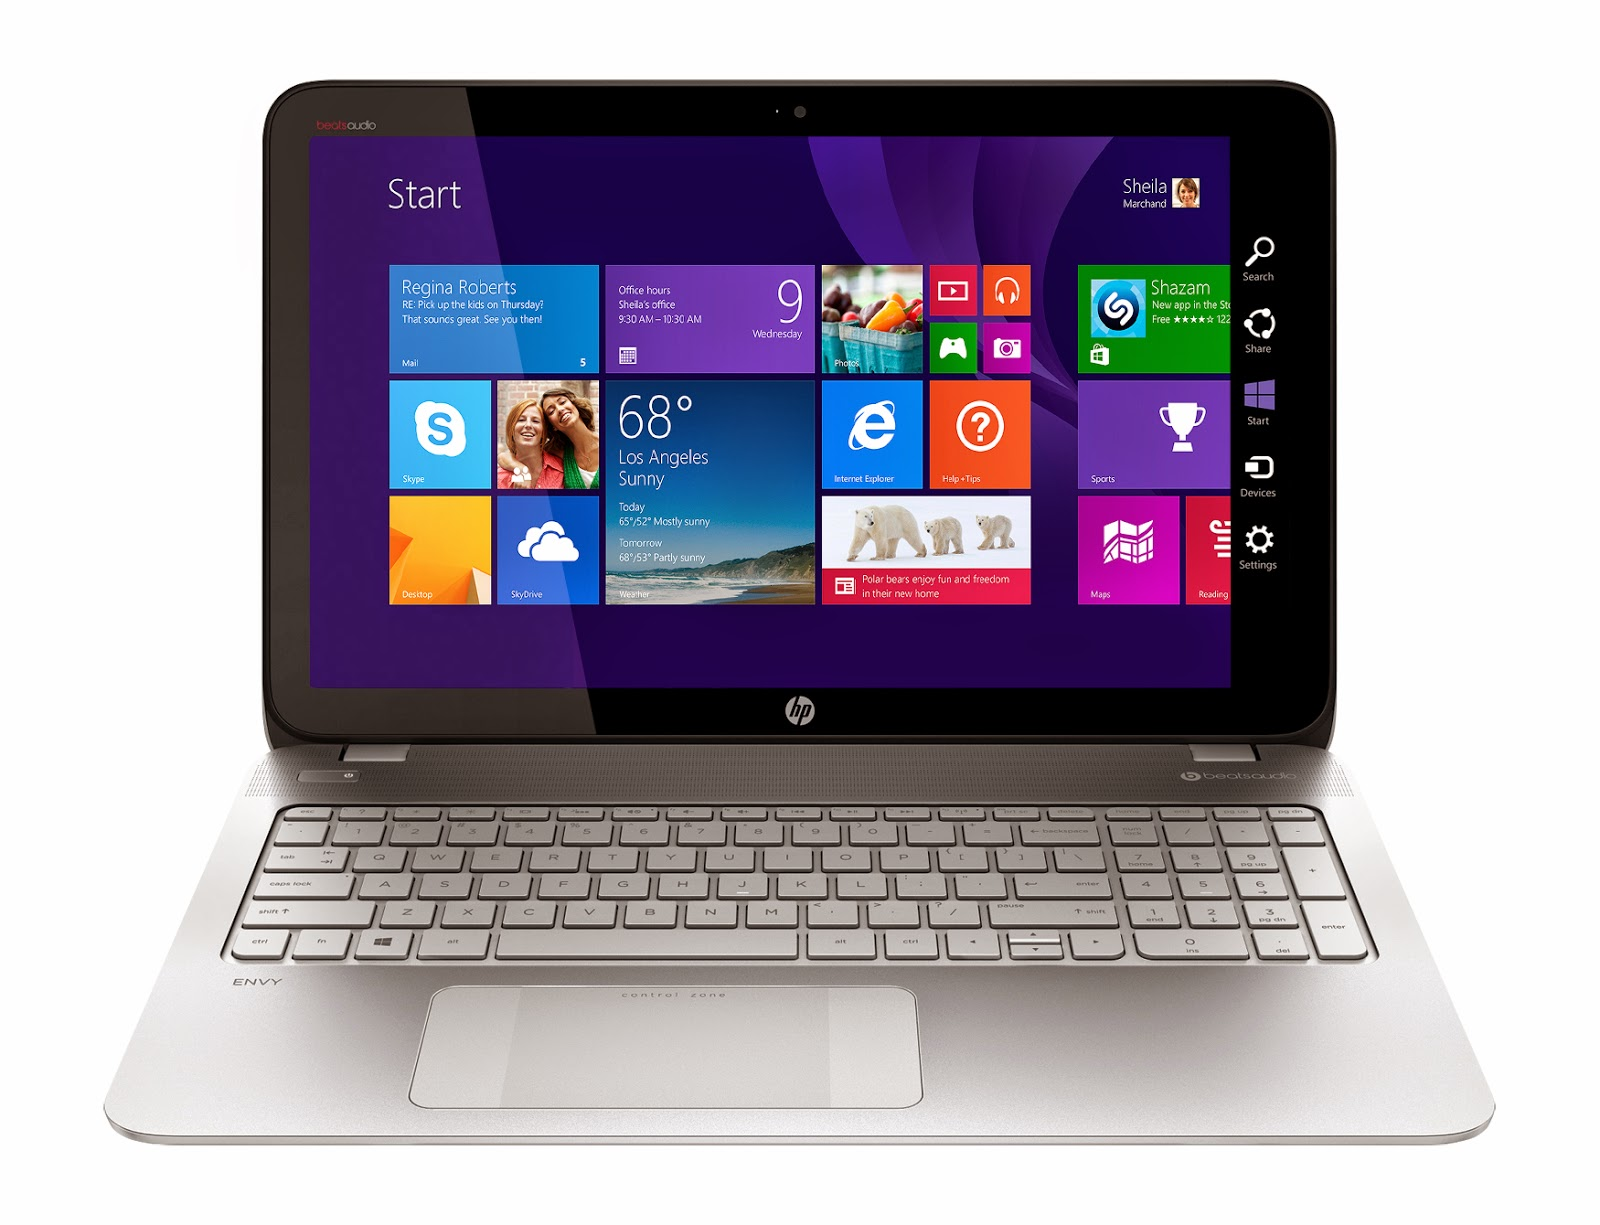 Best Buy has the New HP Envy Touchsmart Laptop